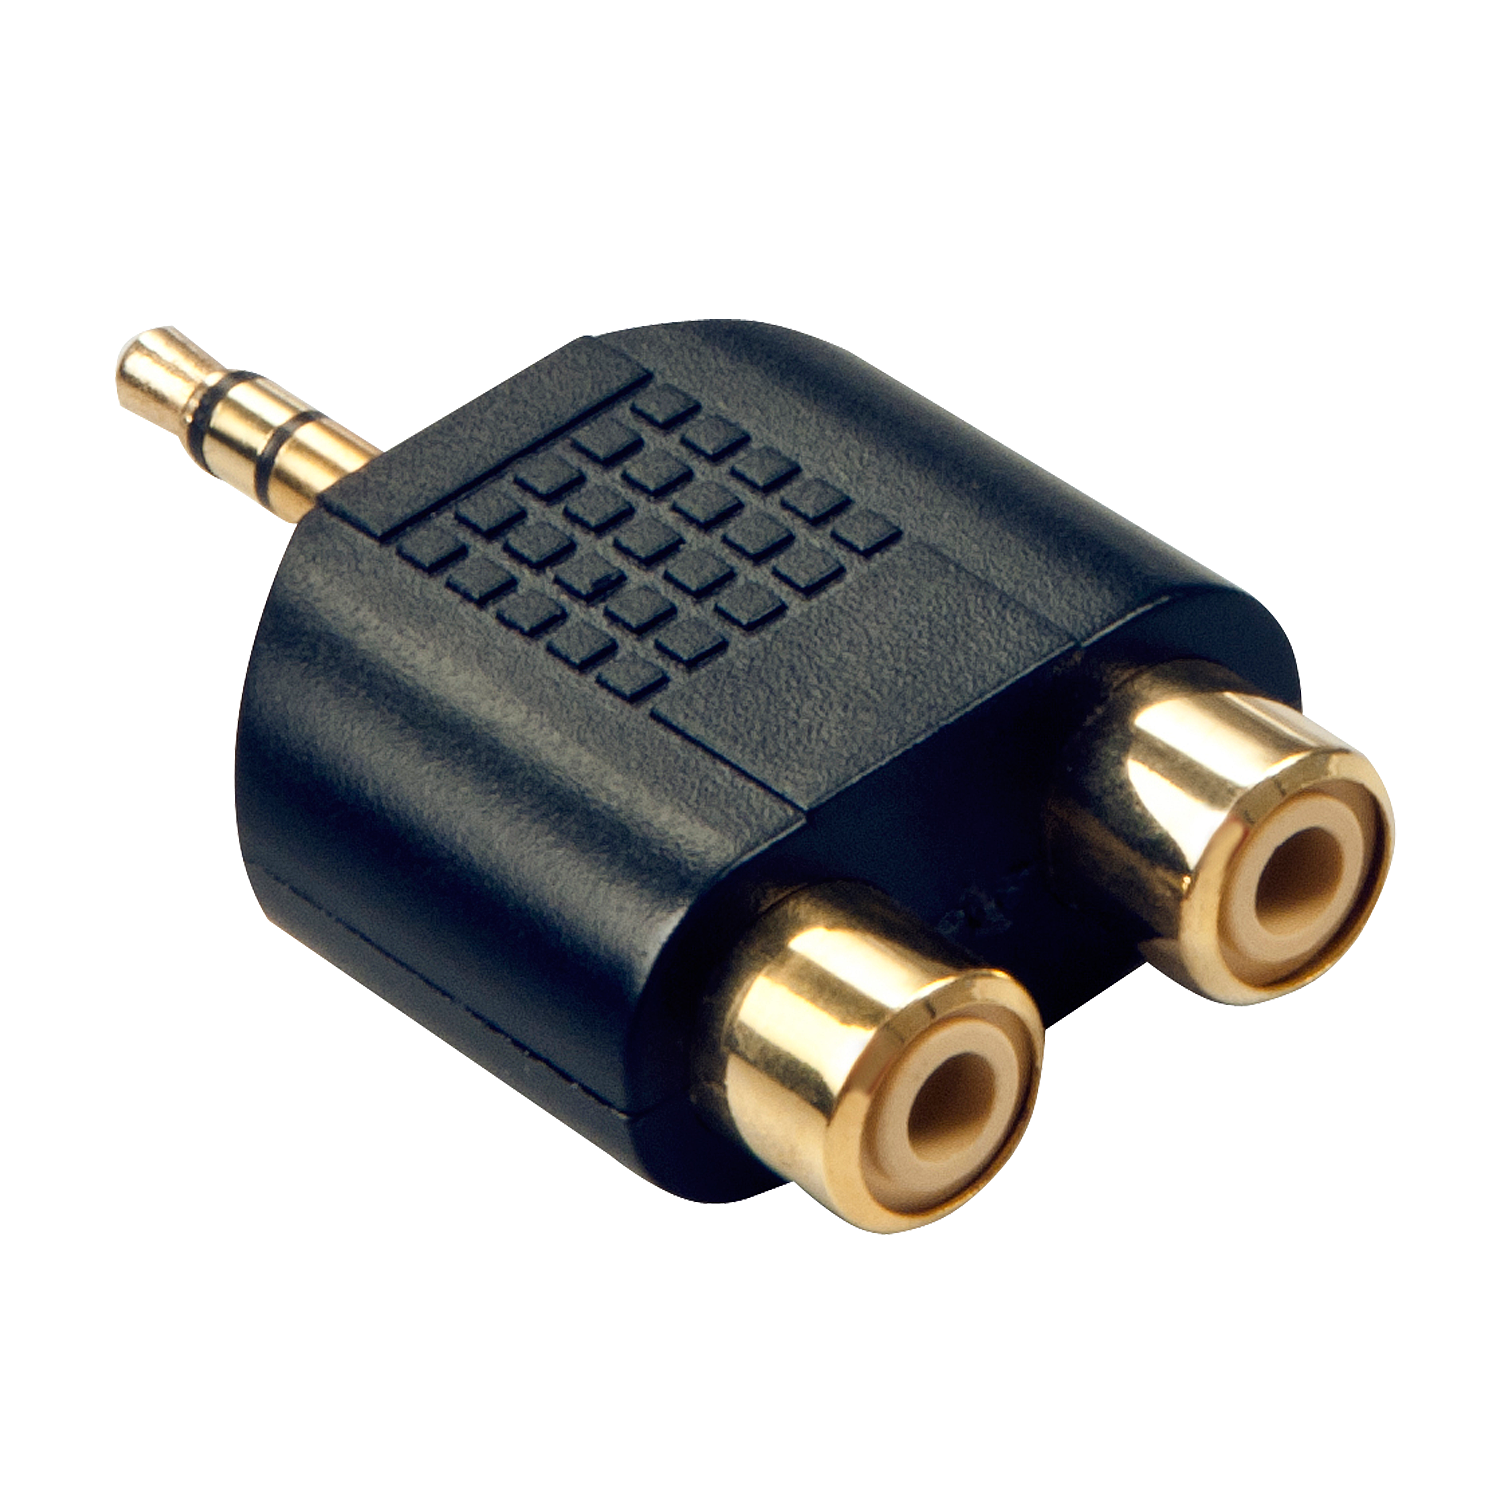 Stereo Audio-Adapter, 2x RCA Buchse an 3.5mm Klinkenstecker